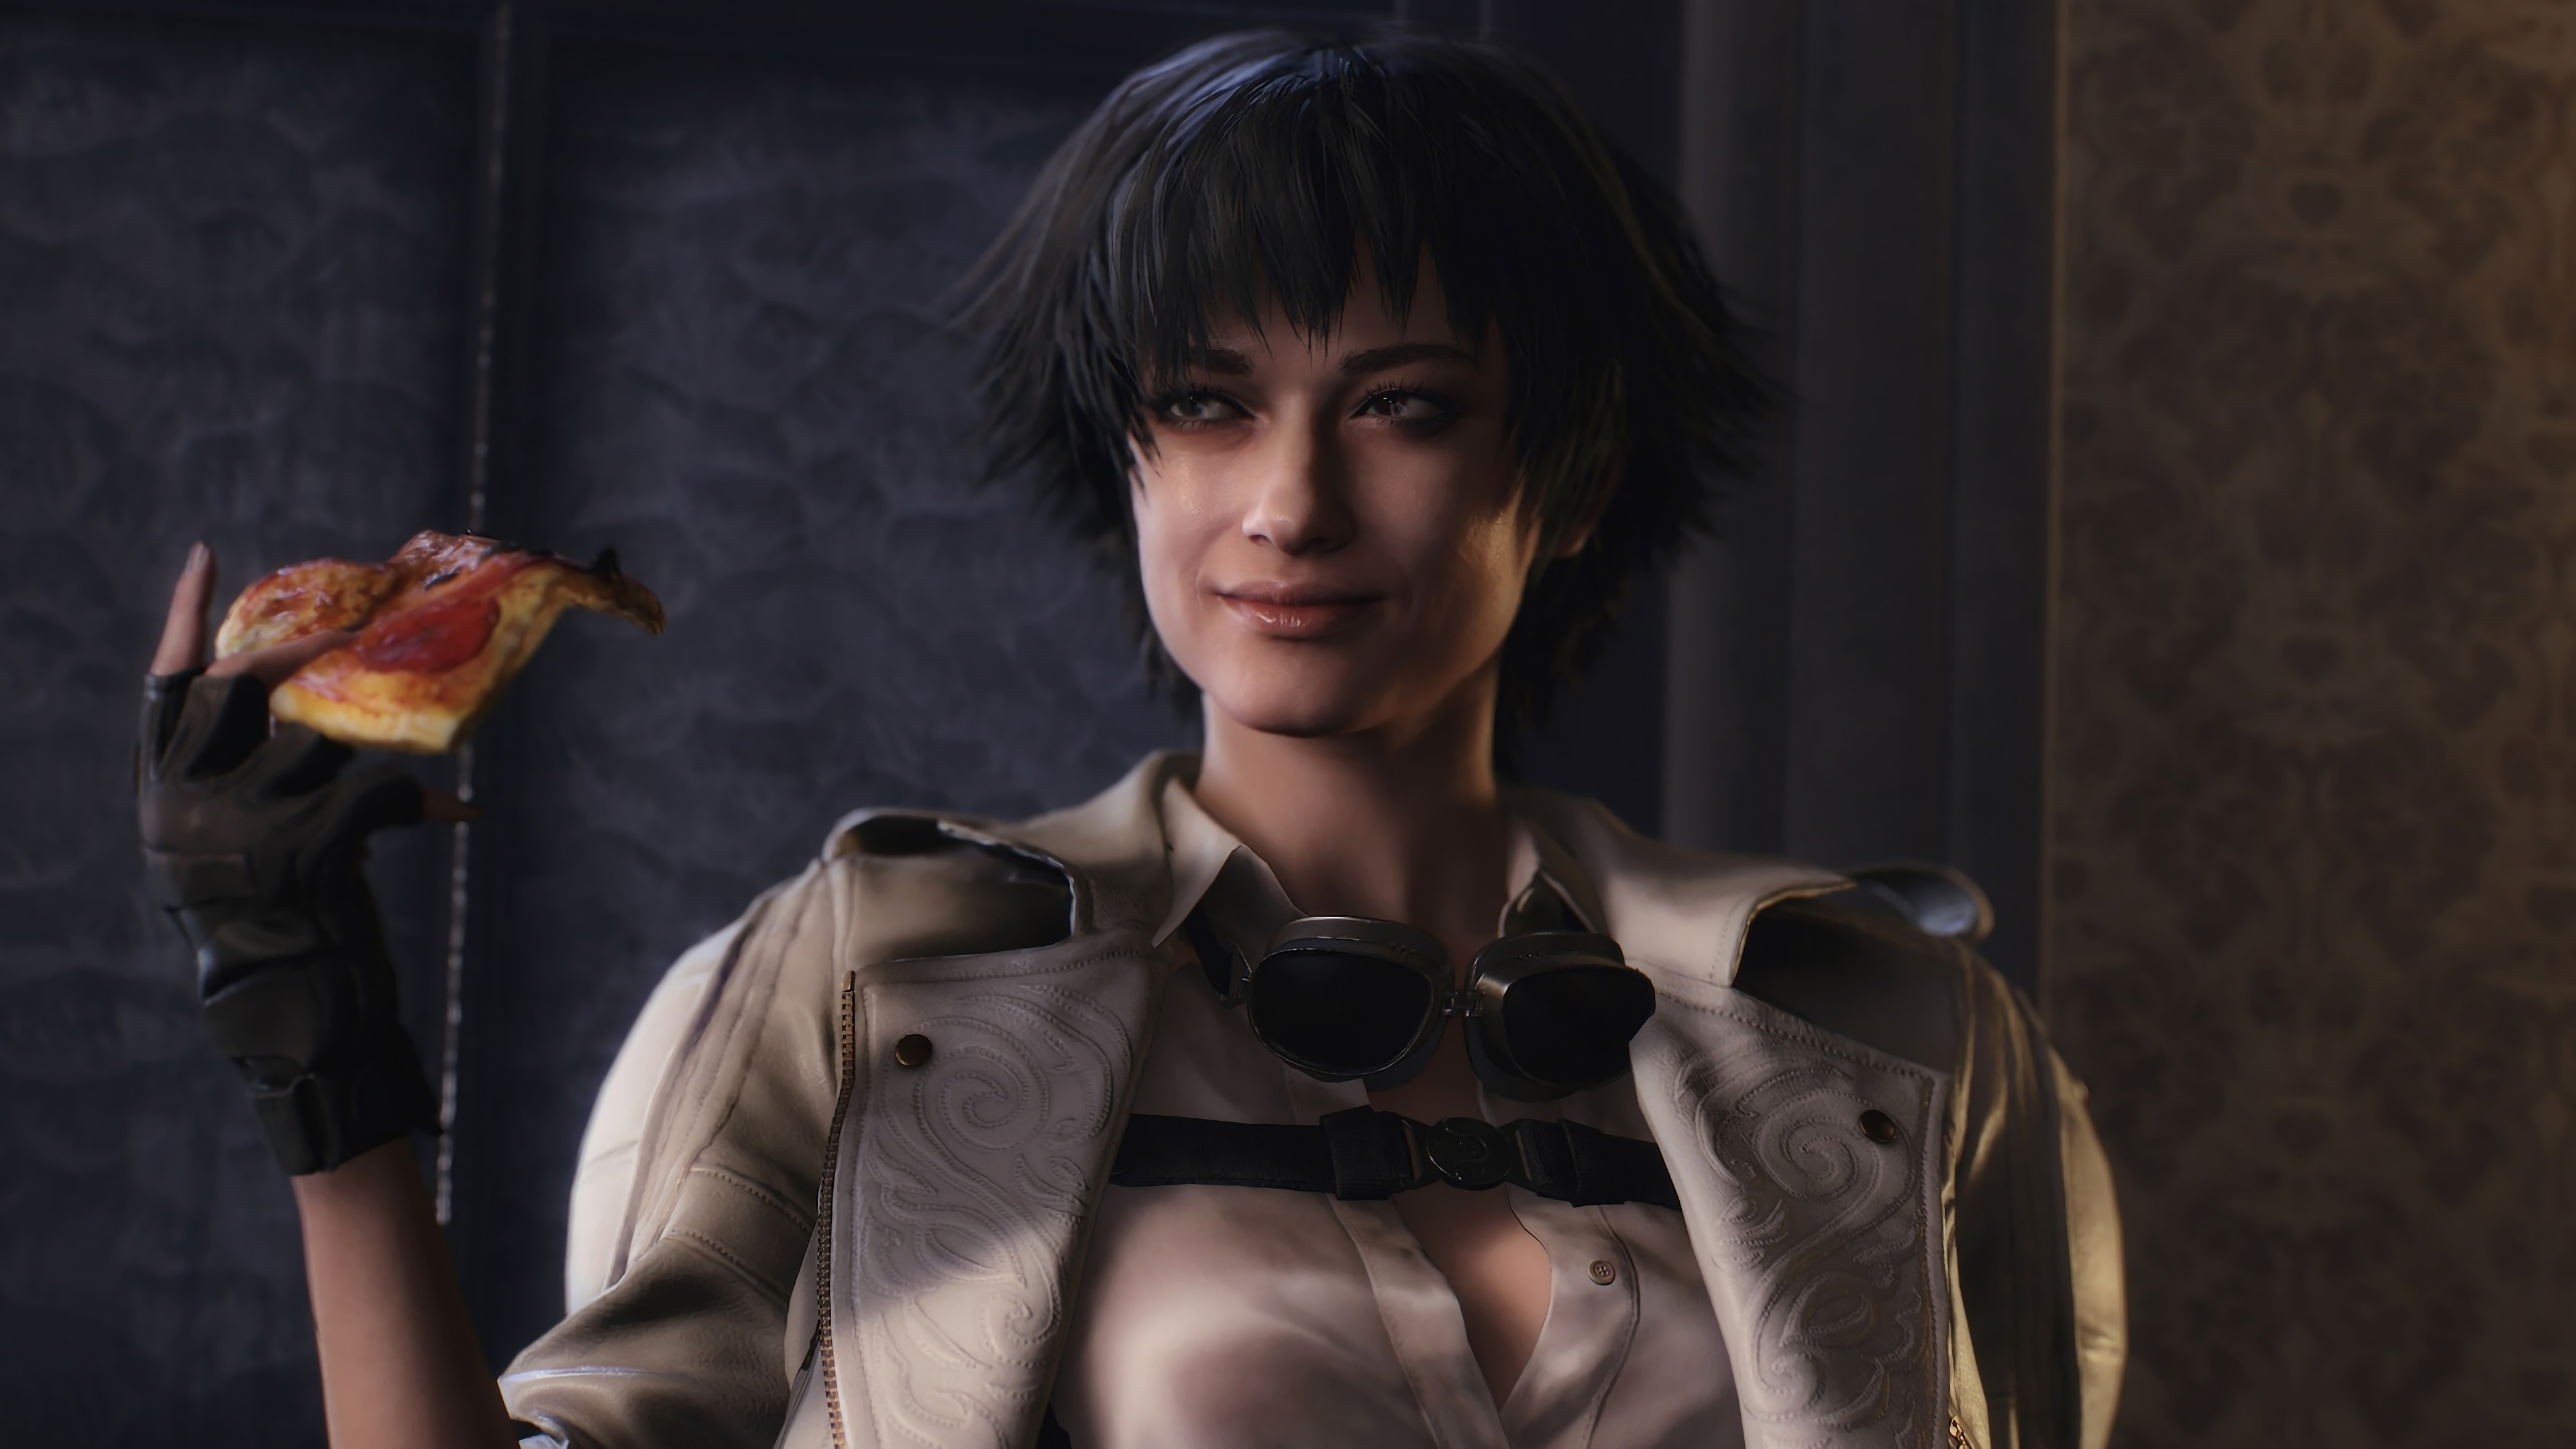 Lady Devil May Cry 5 4k Wallpaper 138